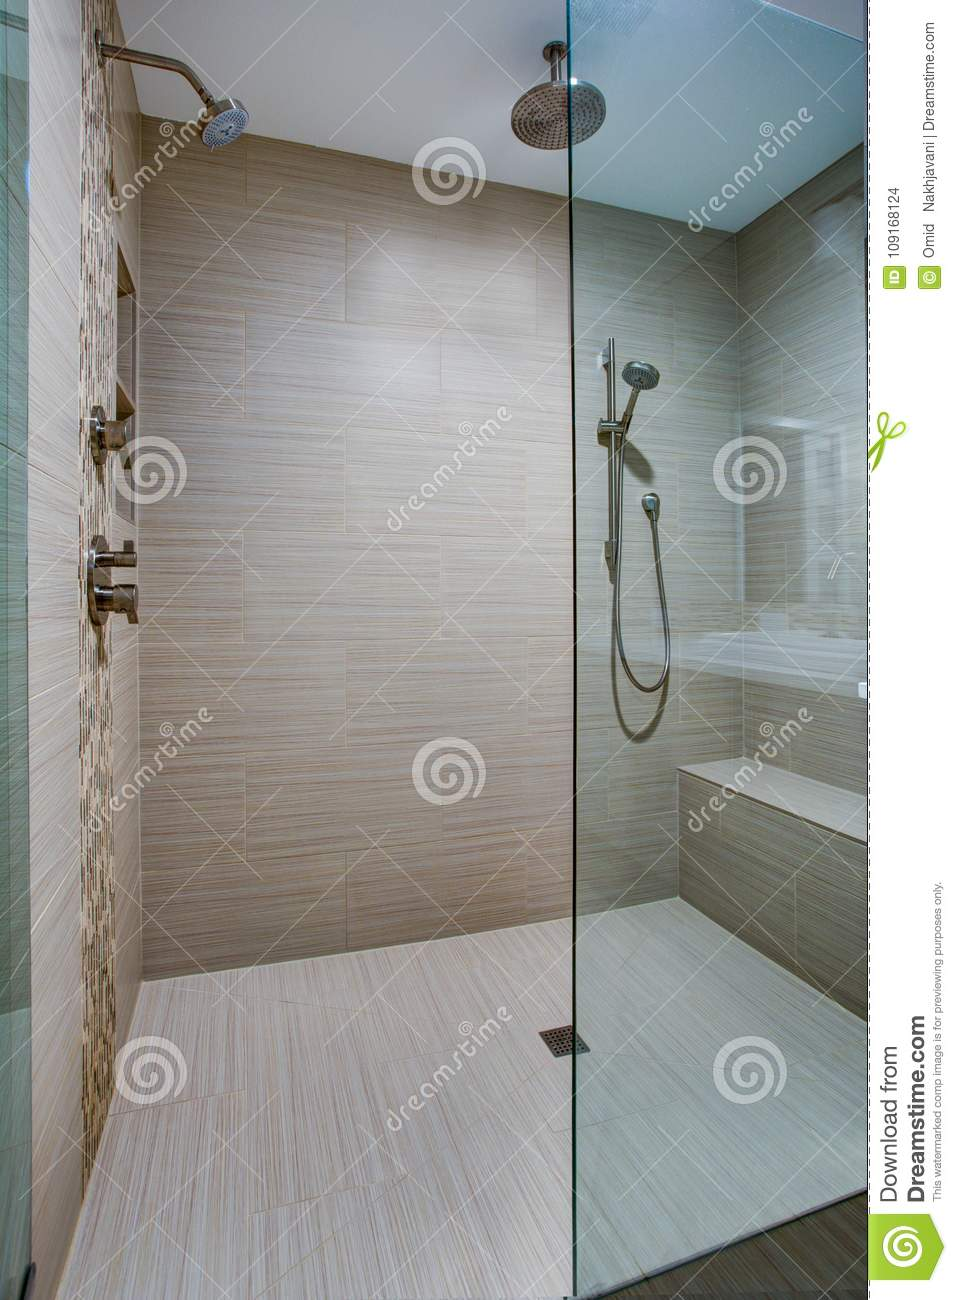 Chic Walk In Shower With Built In Bench Stock Photo Image Of